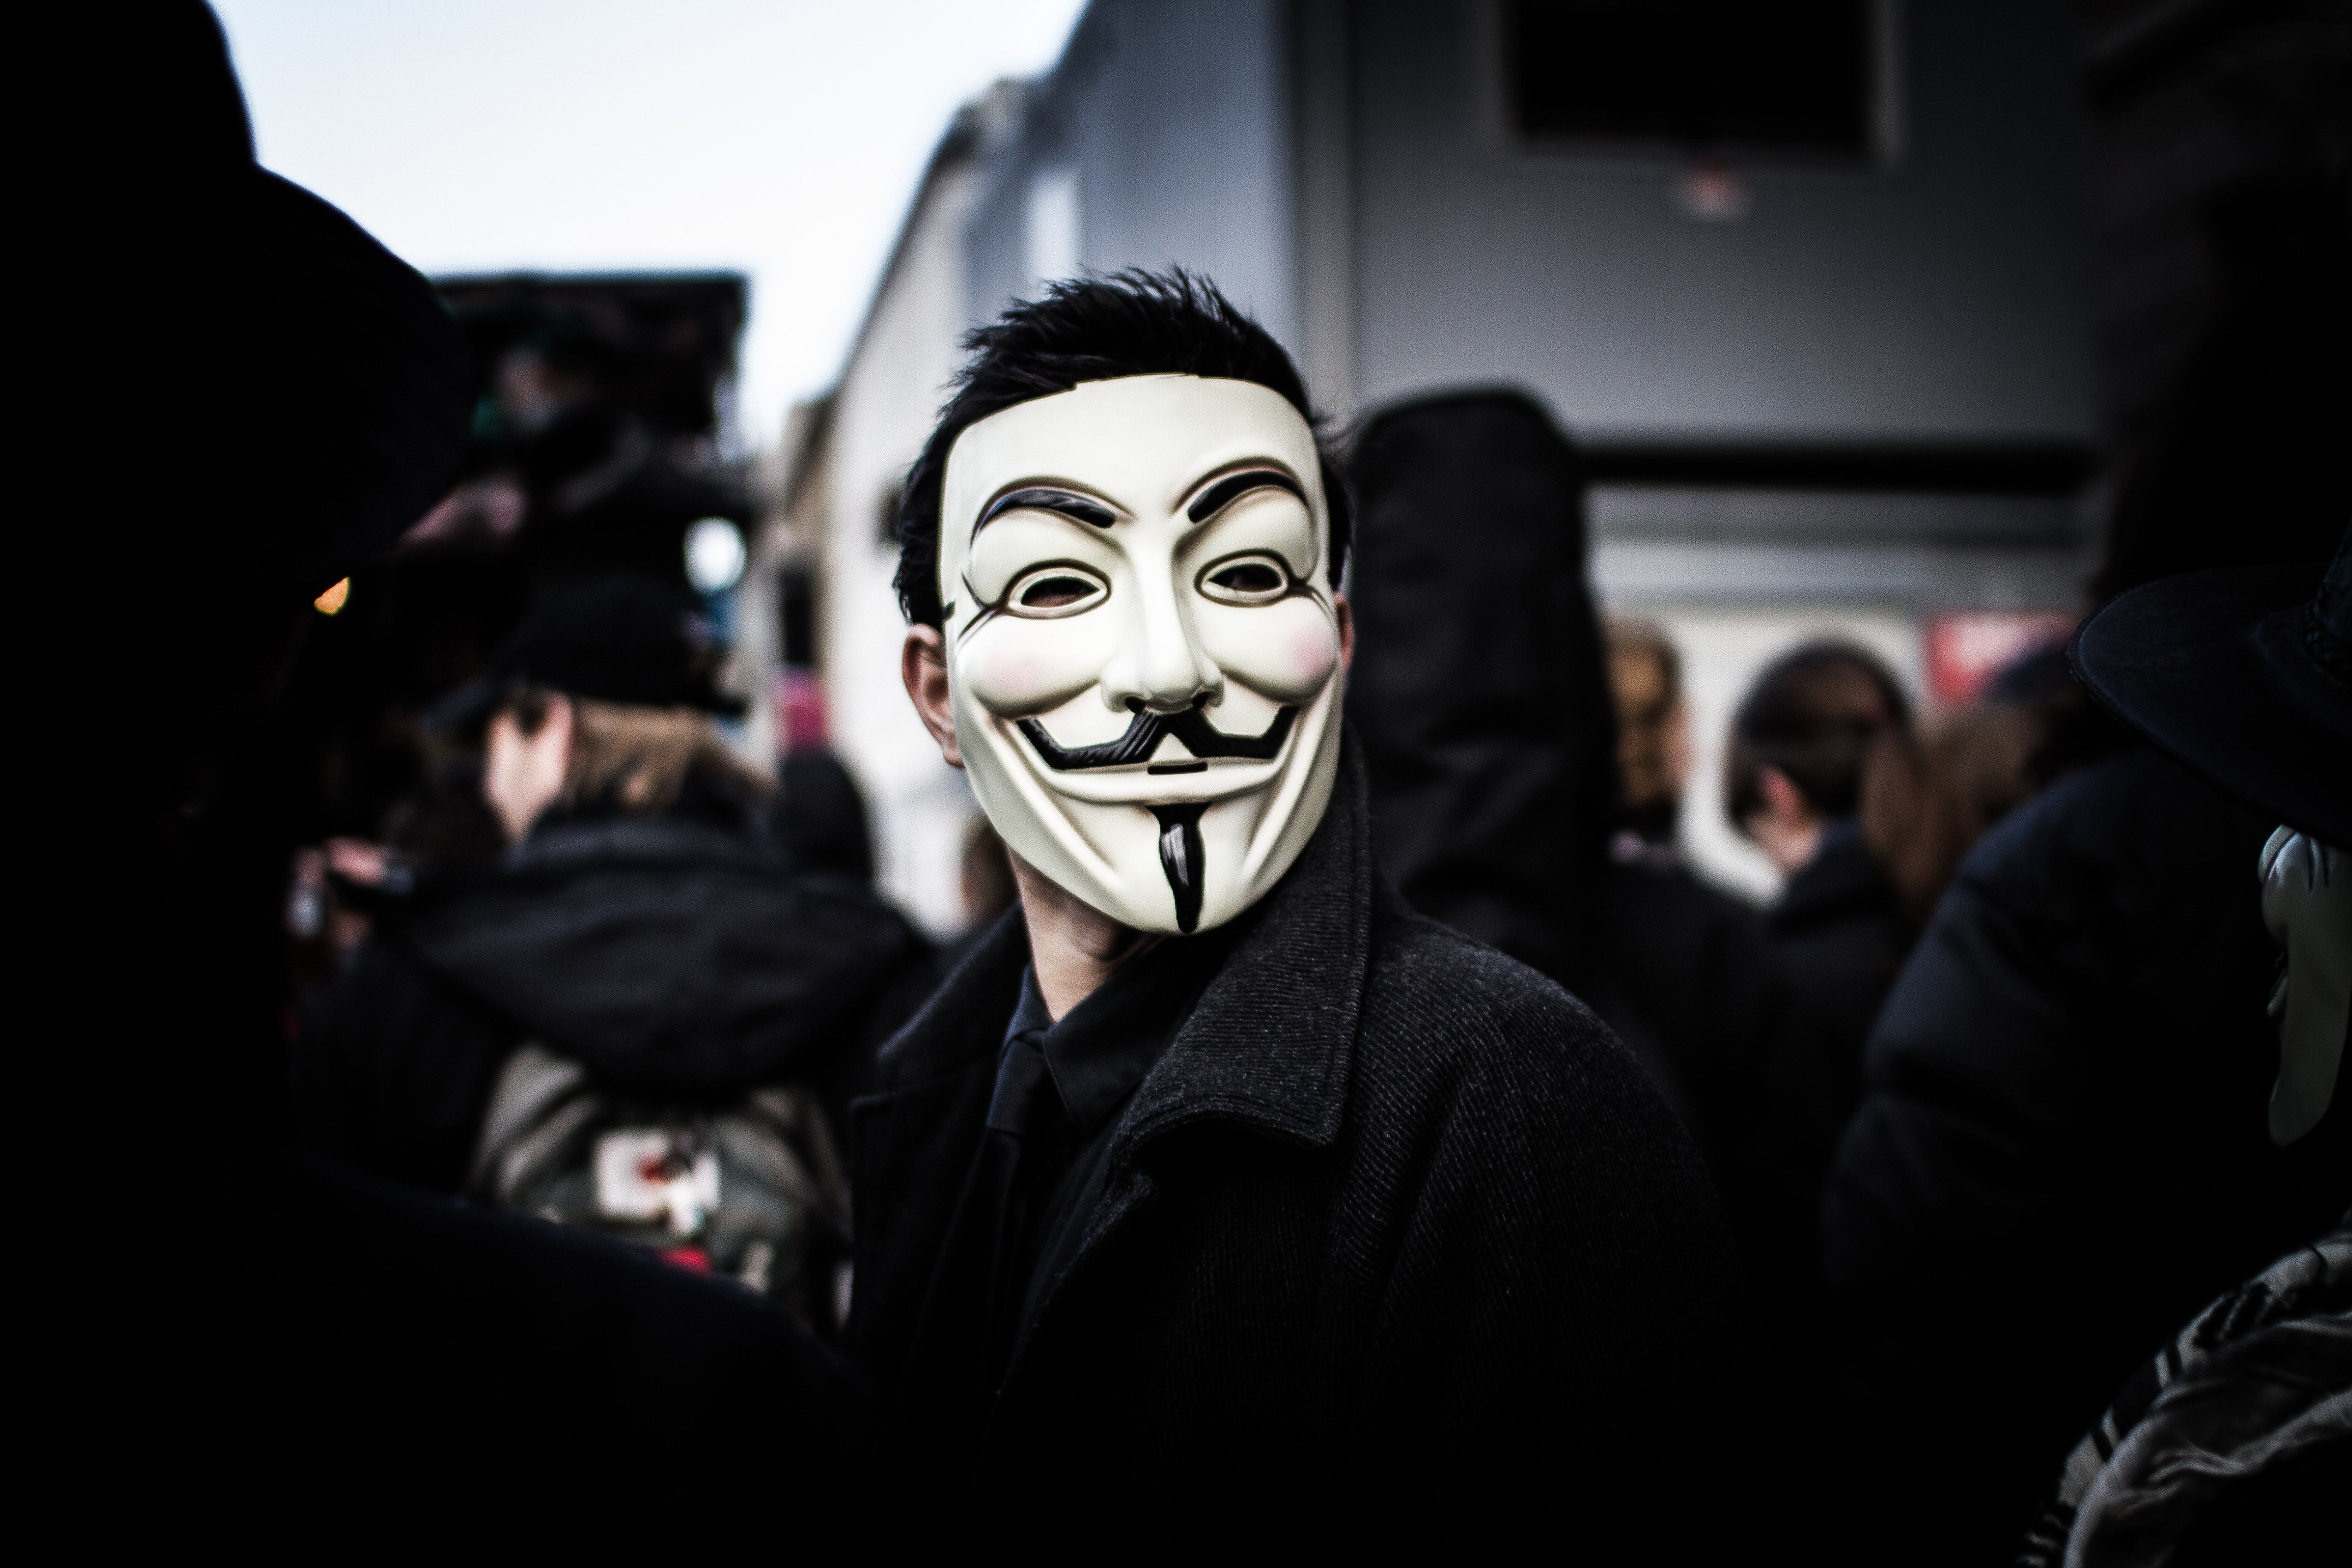 Person wears a Guy Fawkes mask which today is a trademark and symbol for the online hacktivist group Anonymous. 2012. (Photo by: PYMCA/UIG via Getty Images)